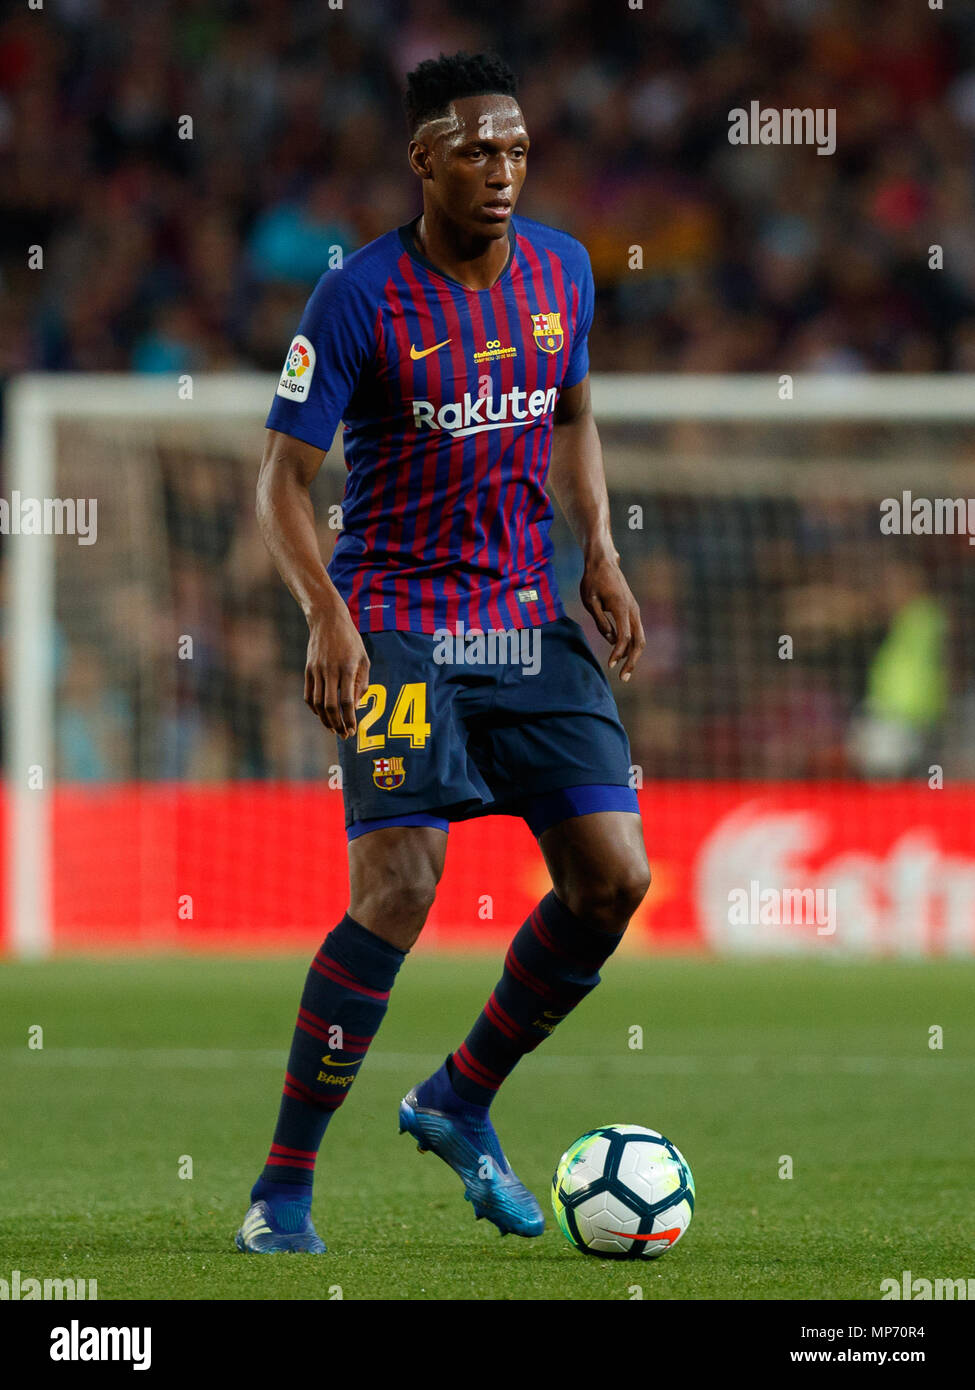 Barcelona 20th May Yerry Mina Of Fc Barcelona In Action During The 2017 2018 Laliga Santander Round 38 Game Between Fc Barcelona And Real Sociedad At Camp Nou On May 20 2018 In